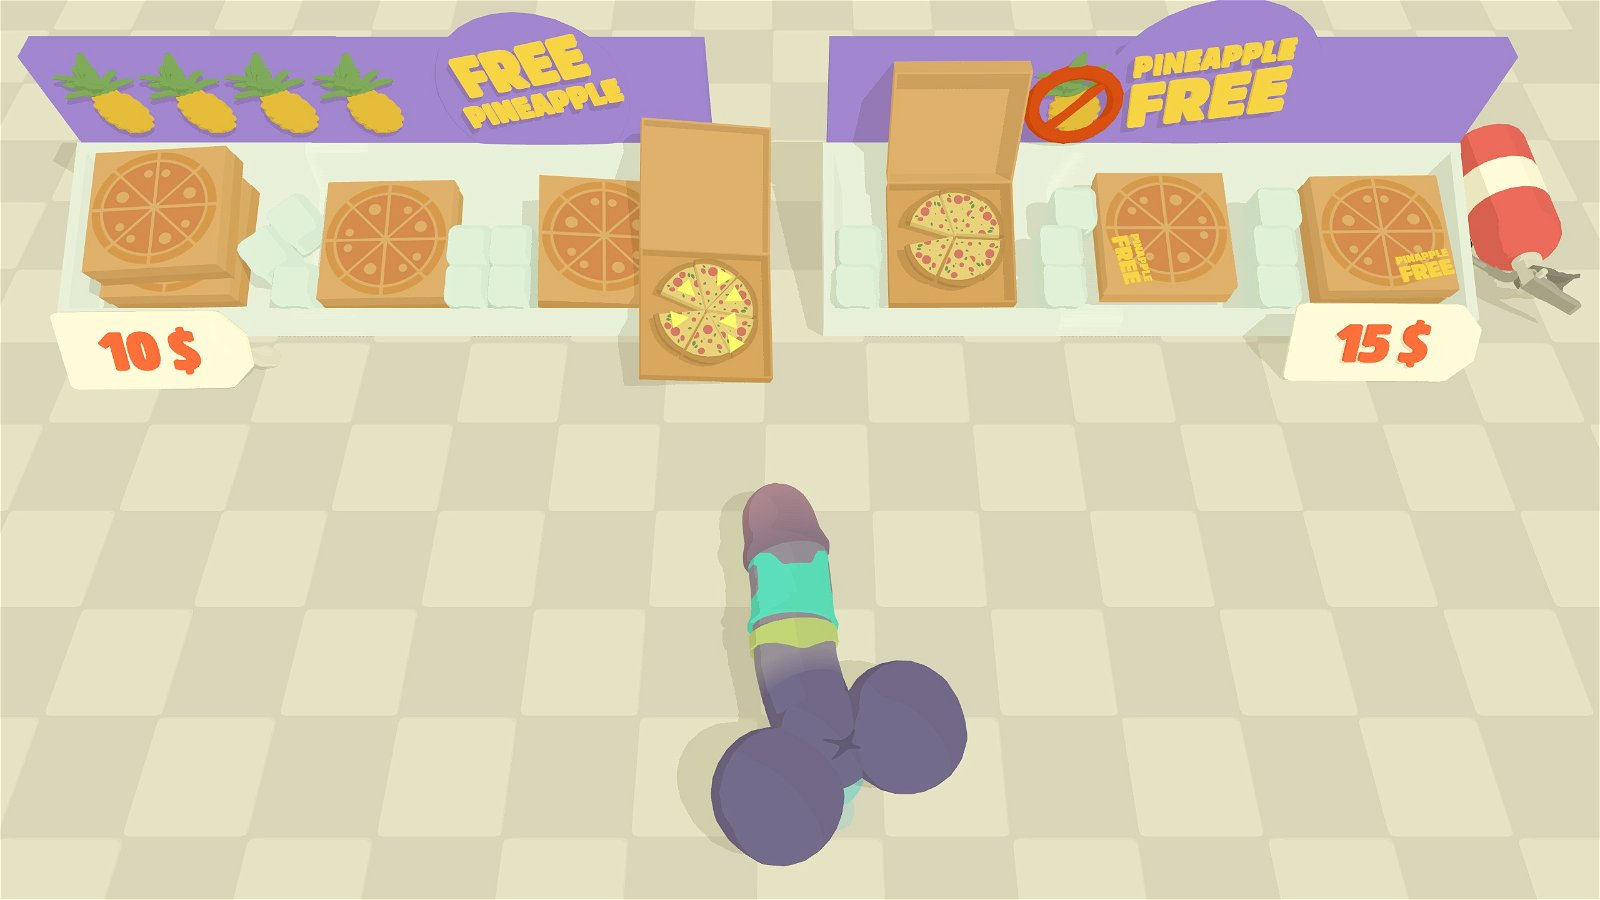 Genital Jousting Review - Going Deep On Toxic Masculinity 2